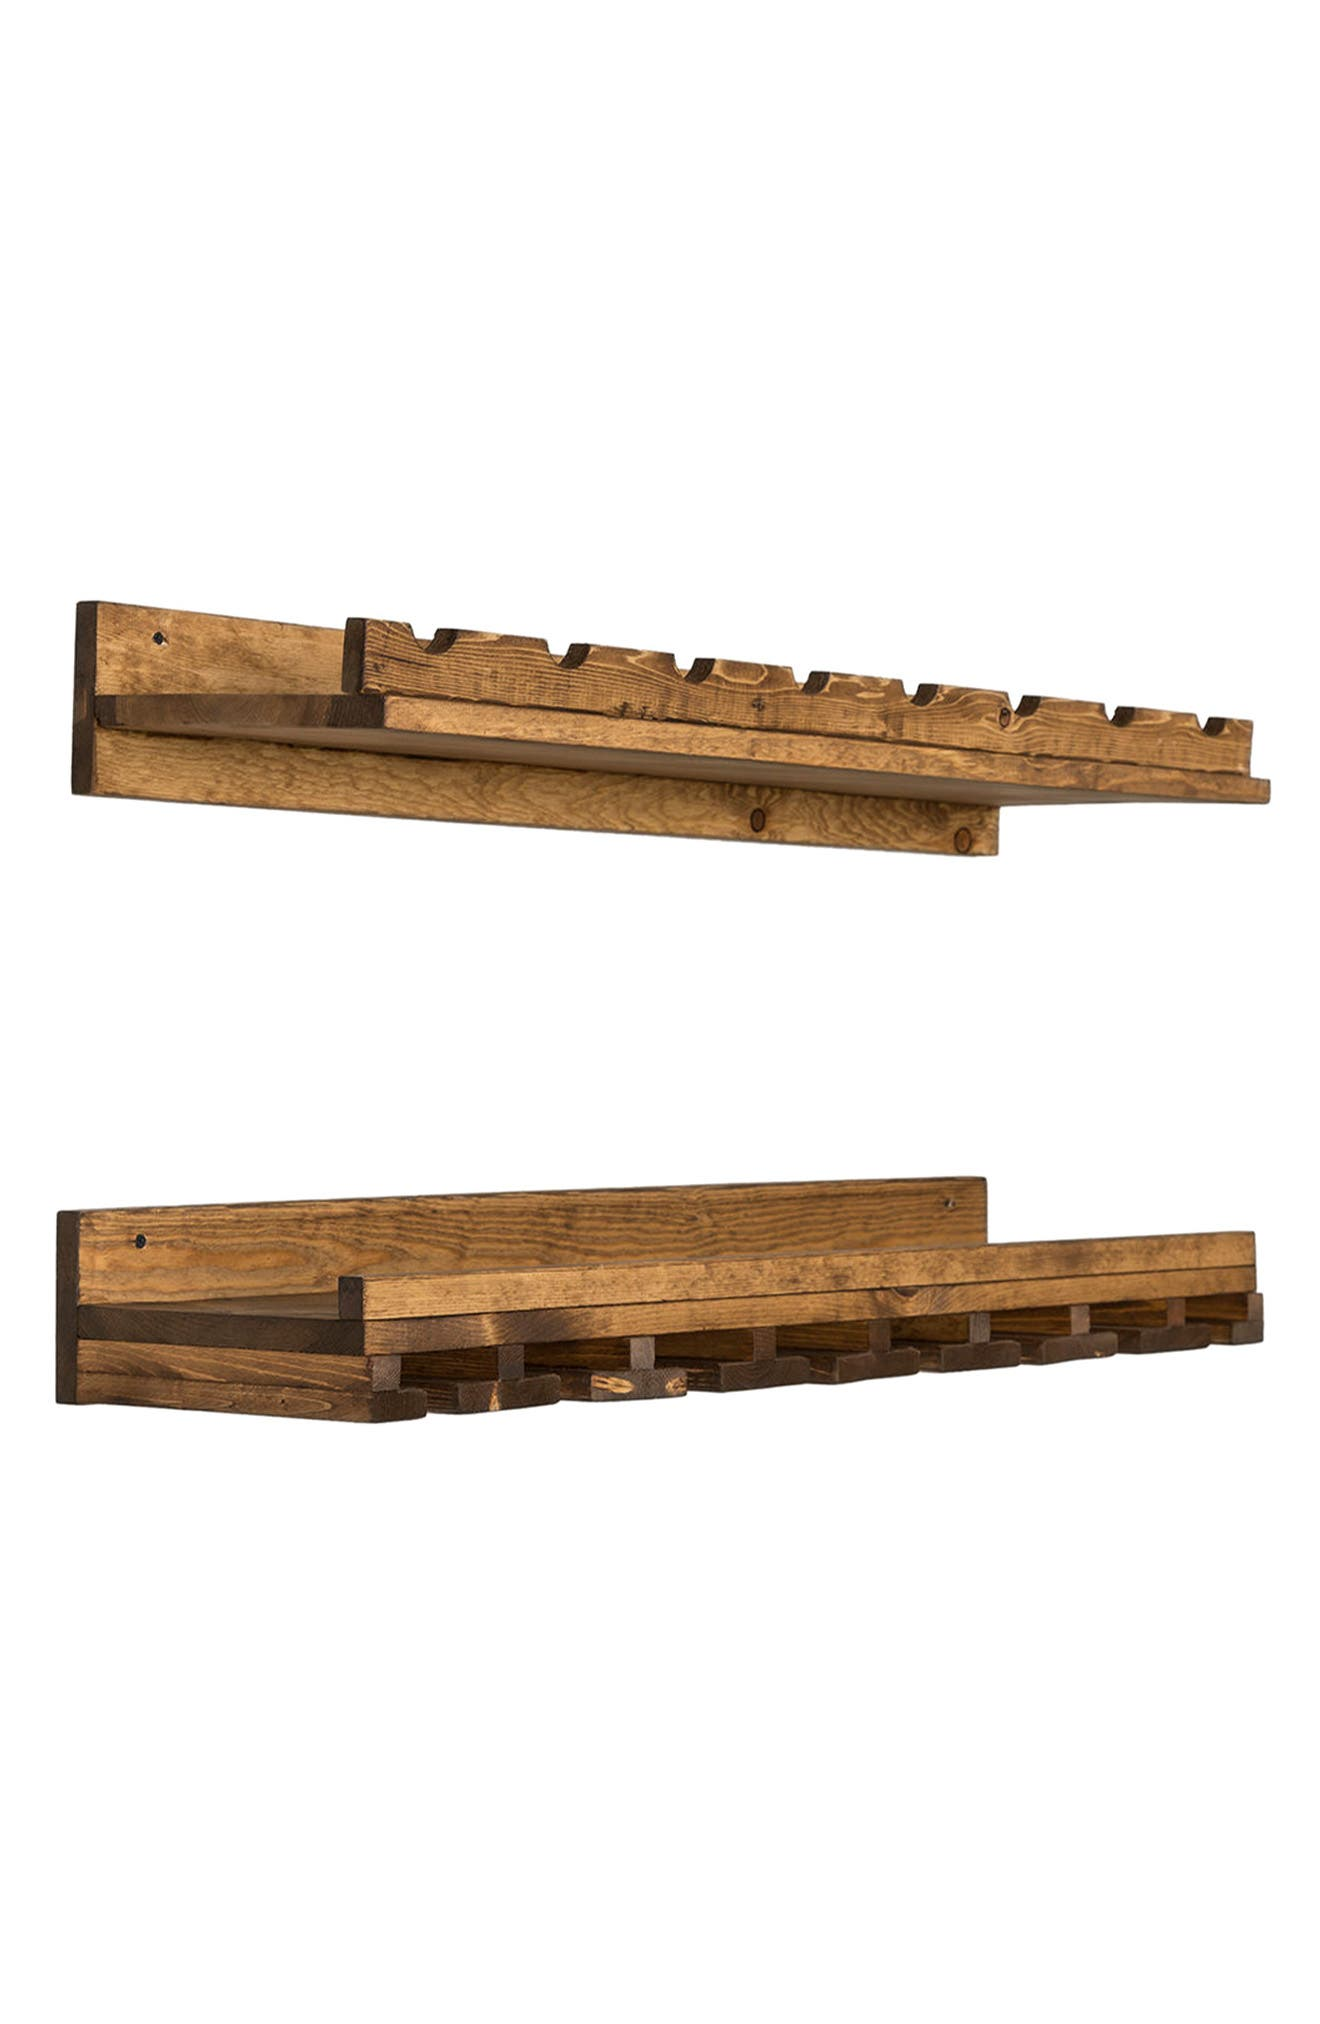 Set of 2 Pine Wood Wine Racks,                             Alternate thumbnail 2, color,                             200